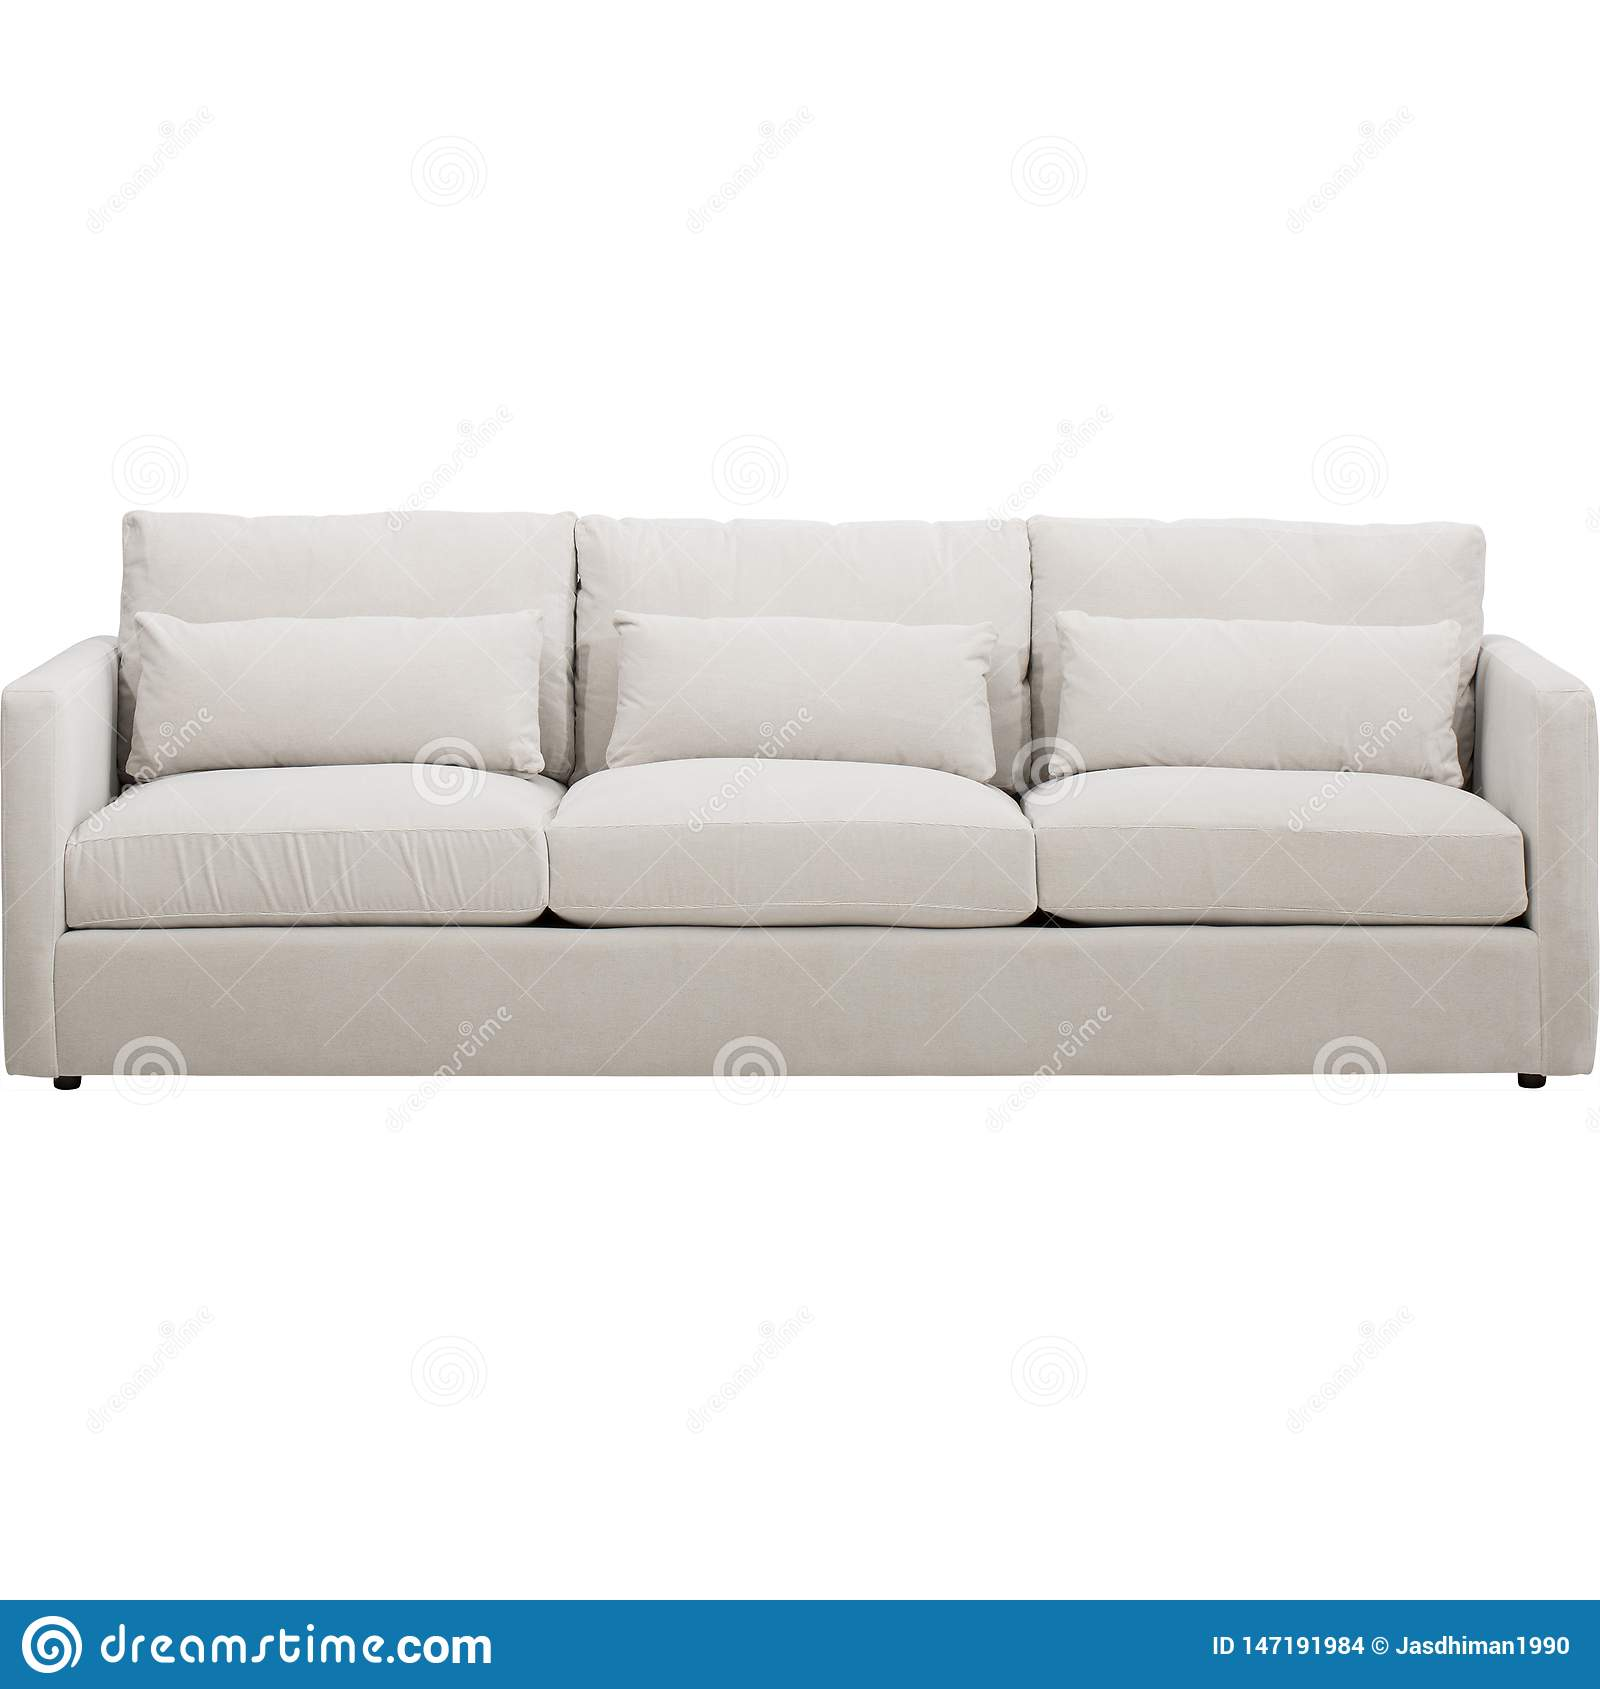 Wondrous Modern Armchair Single Sofa Seat Home Living Room Or Bedroom Pabps2019 Chair Design Images Pabps2019Com